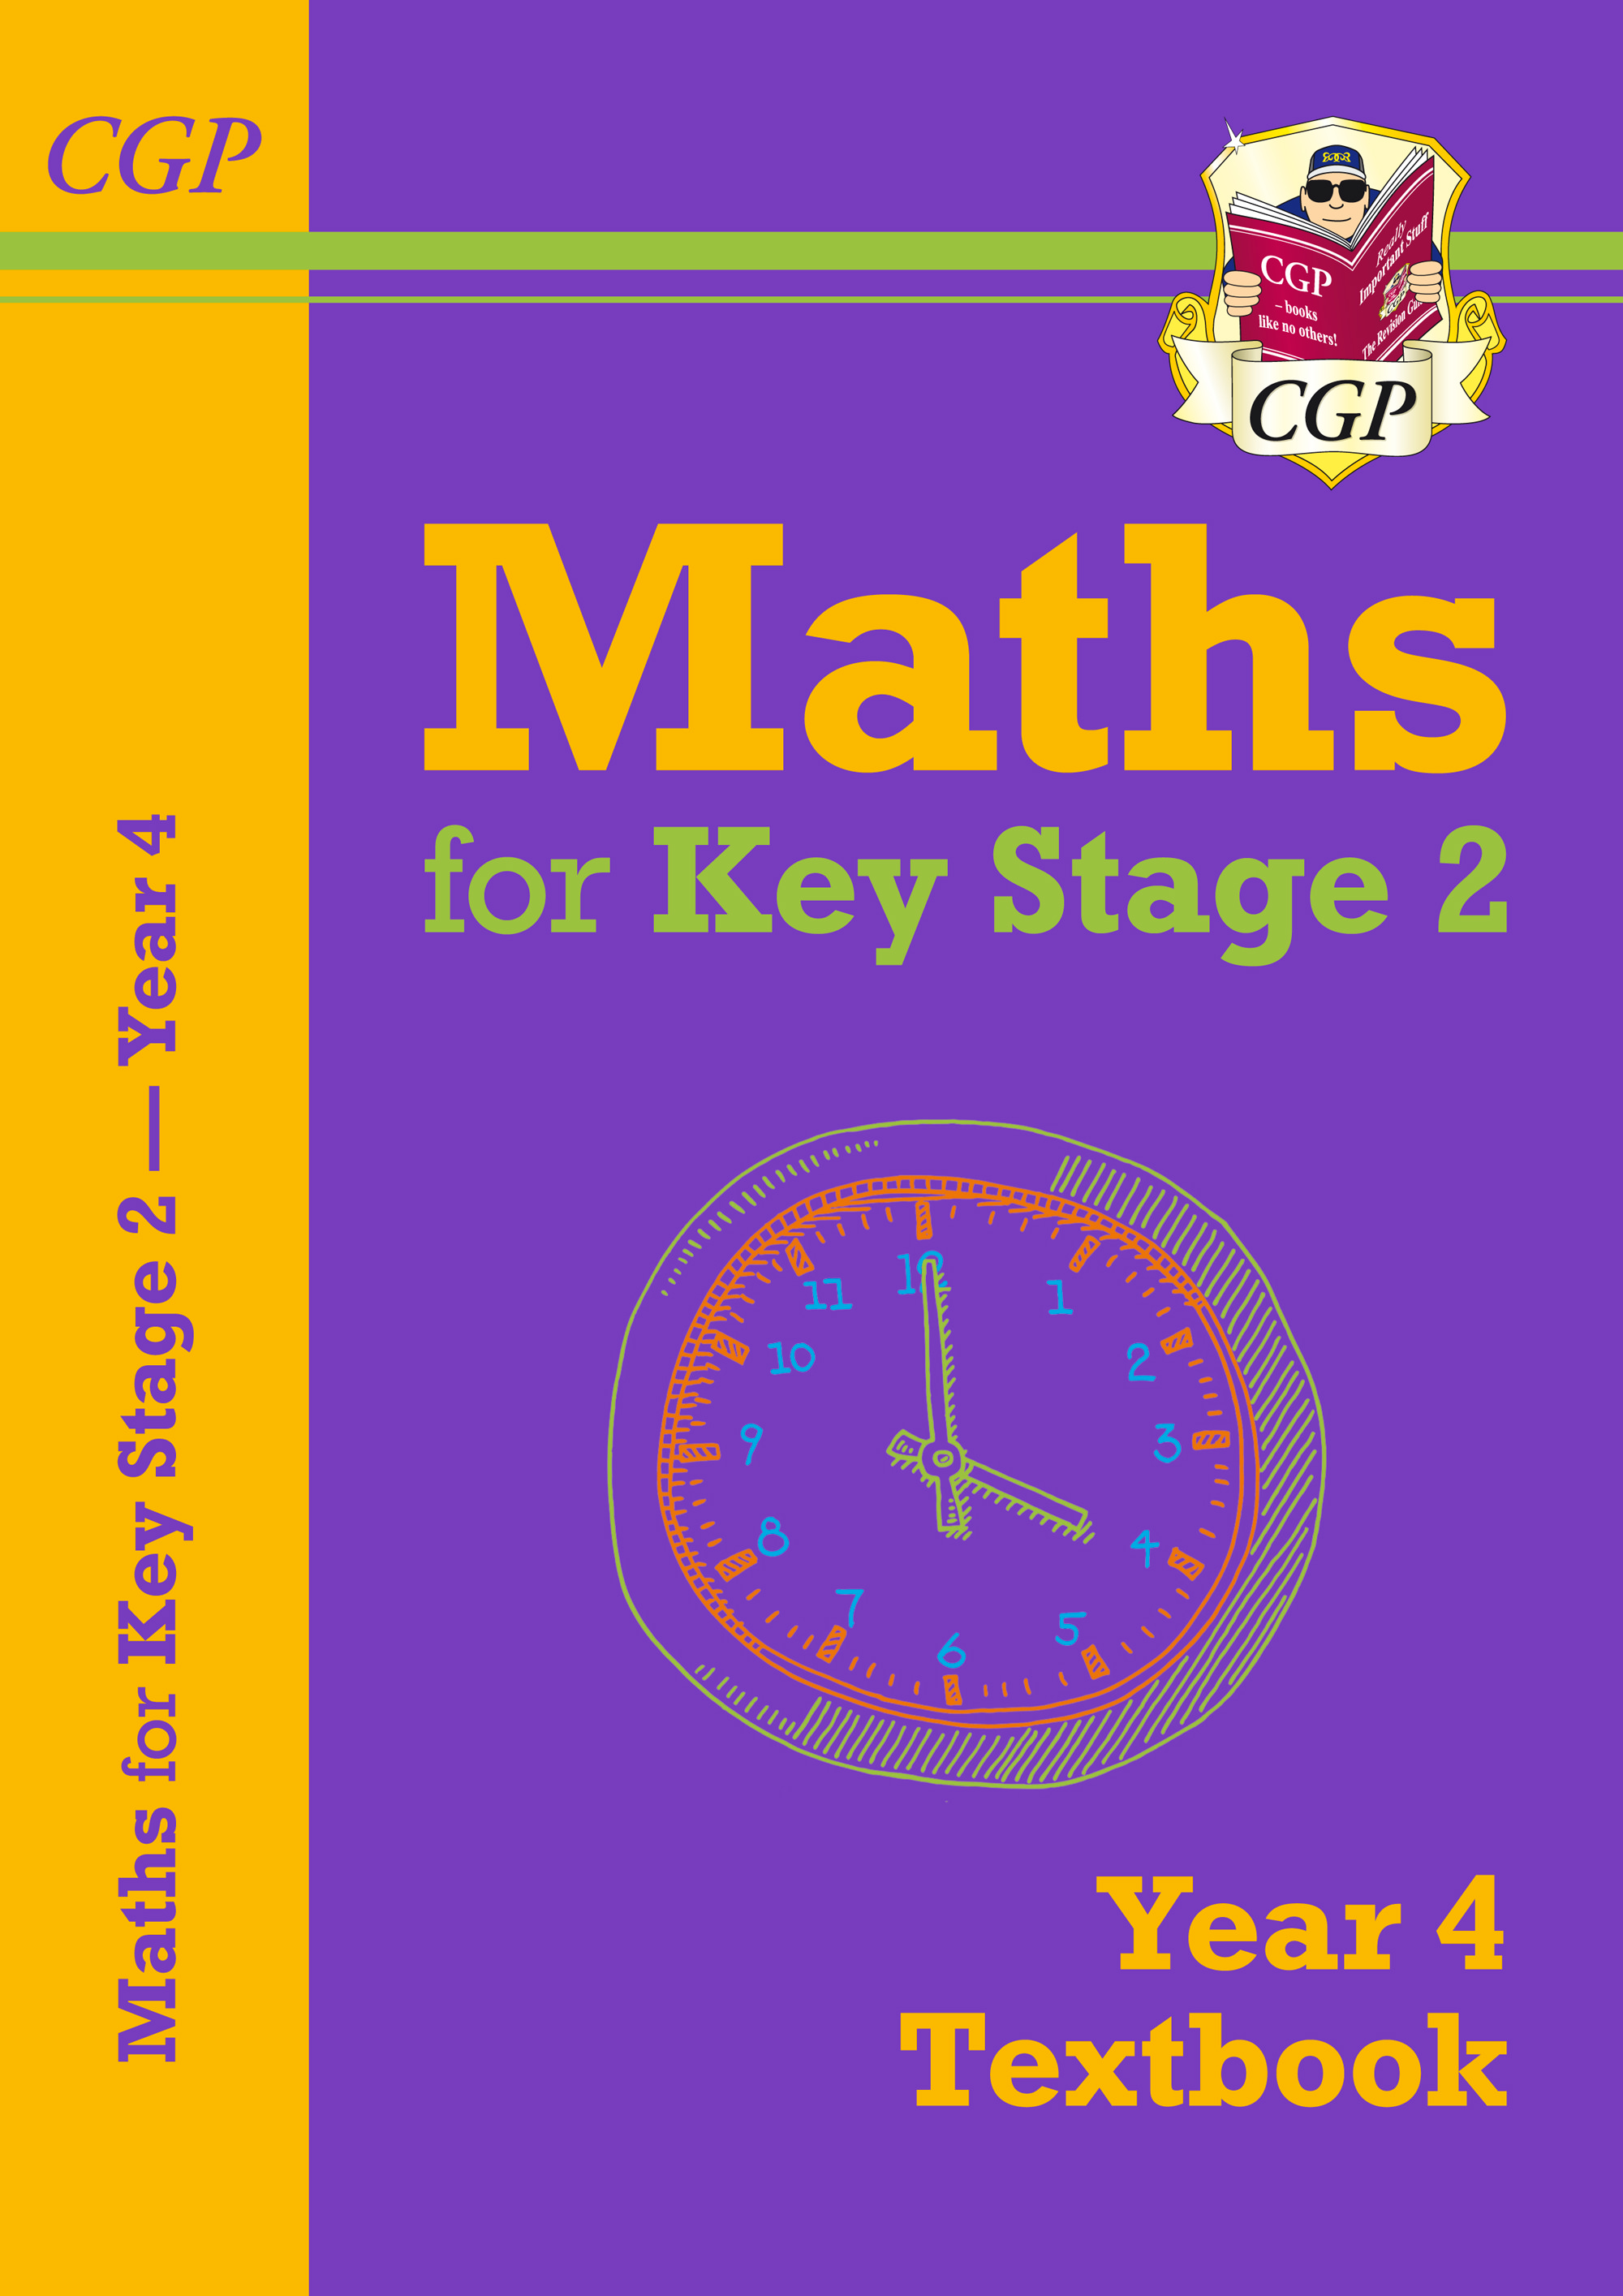 M4PB21 - KS2 Maths Textbook - Year 4